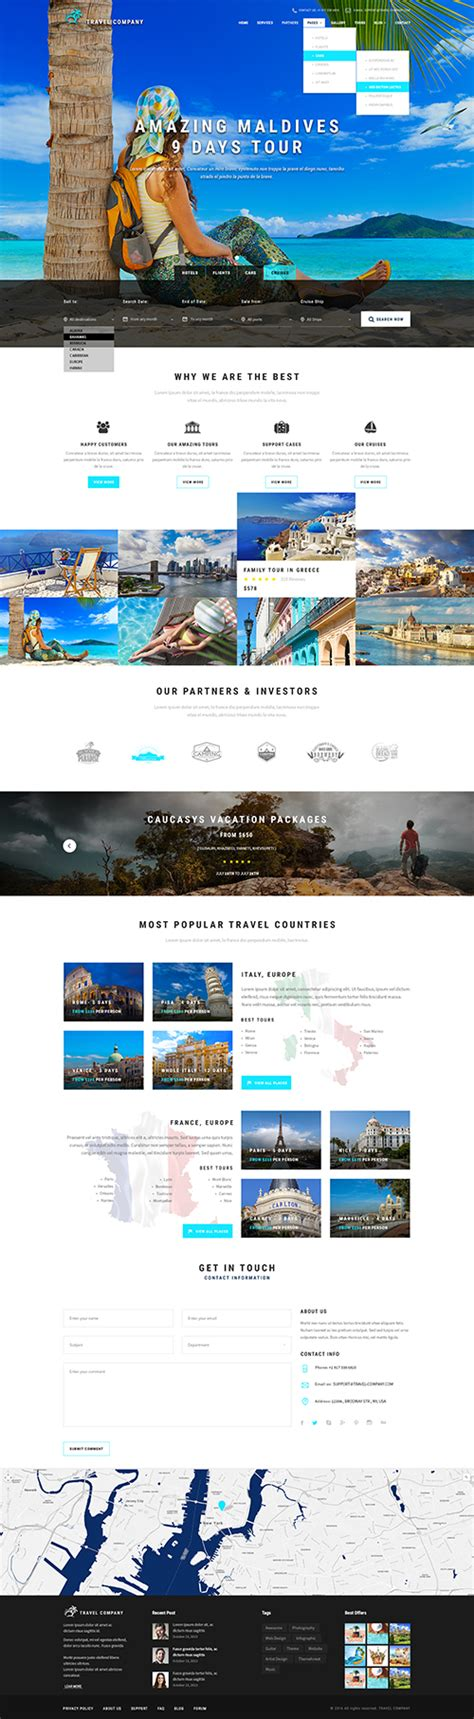 bootstrap theme free travel travel agency template tourism website template gridgum